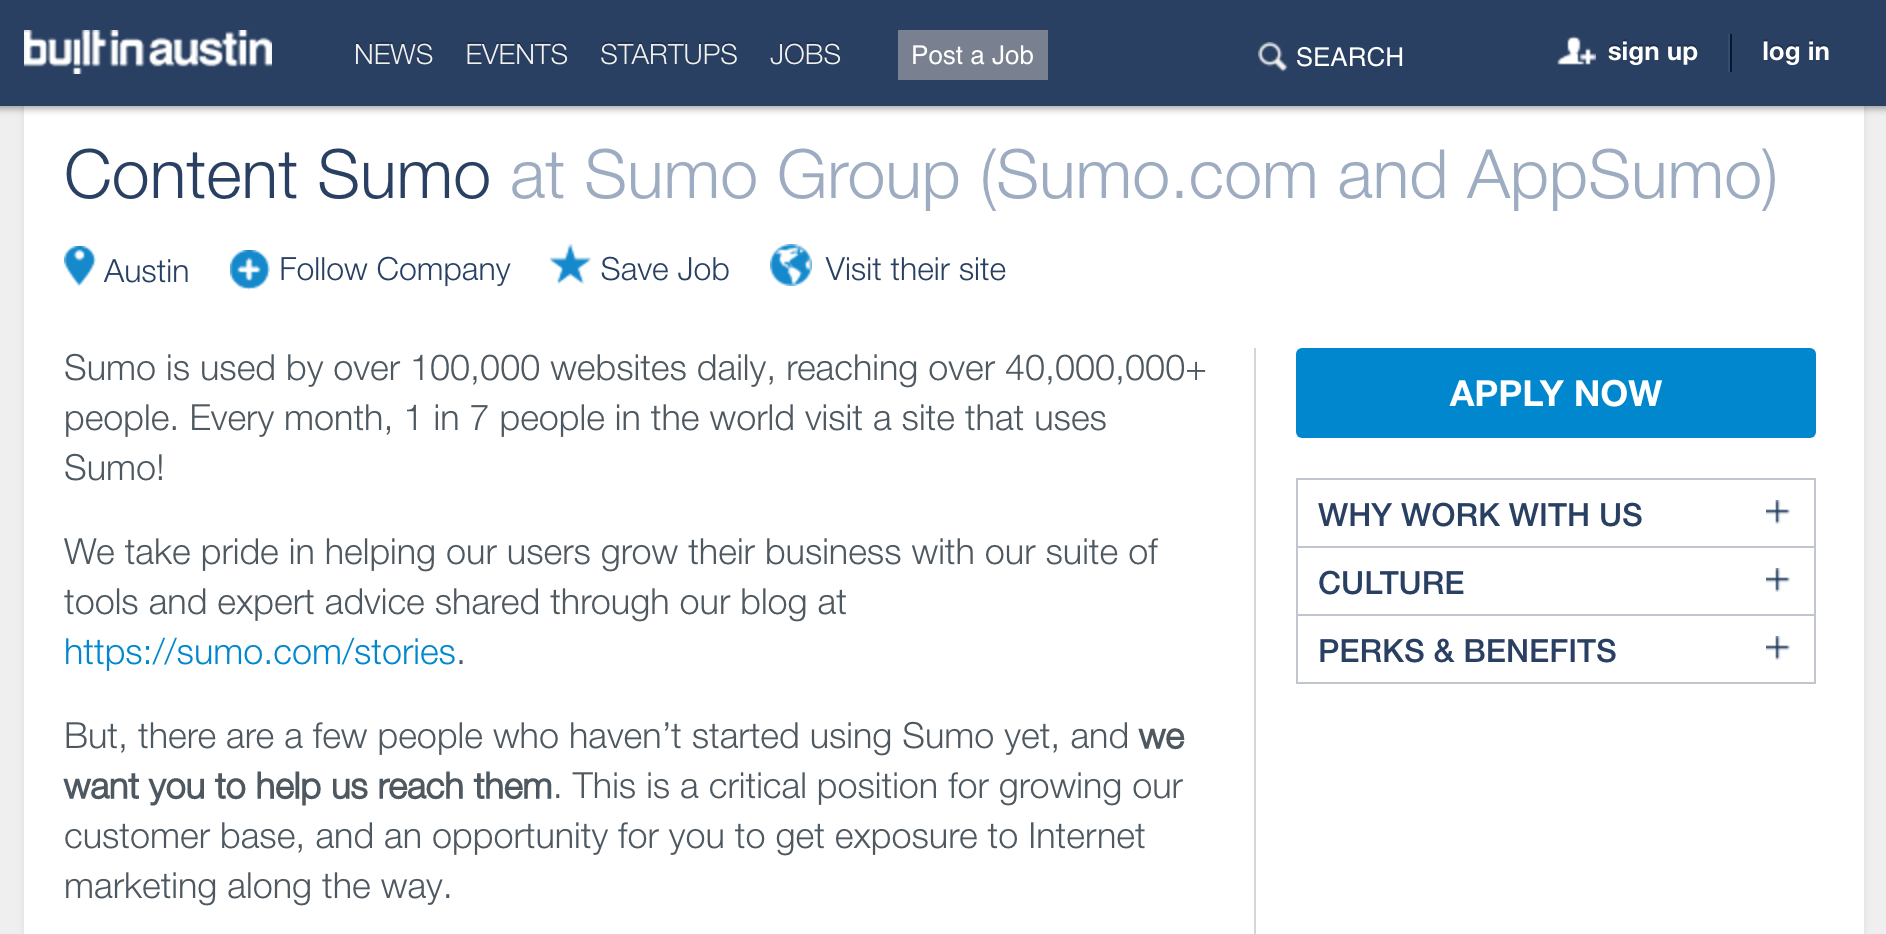 Screenshot showing a job opening on Sumo.com